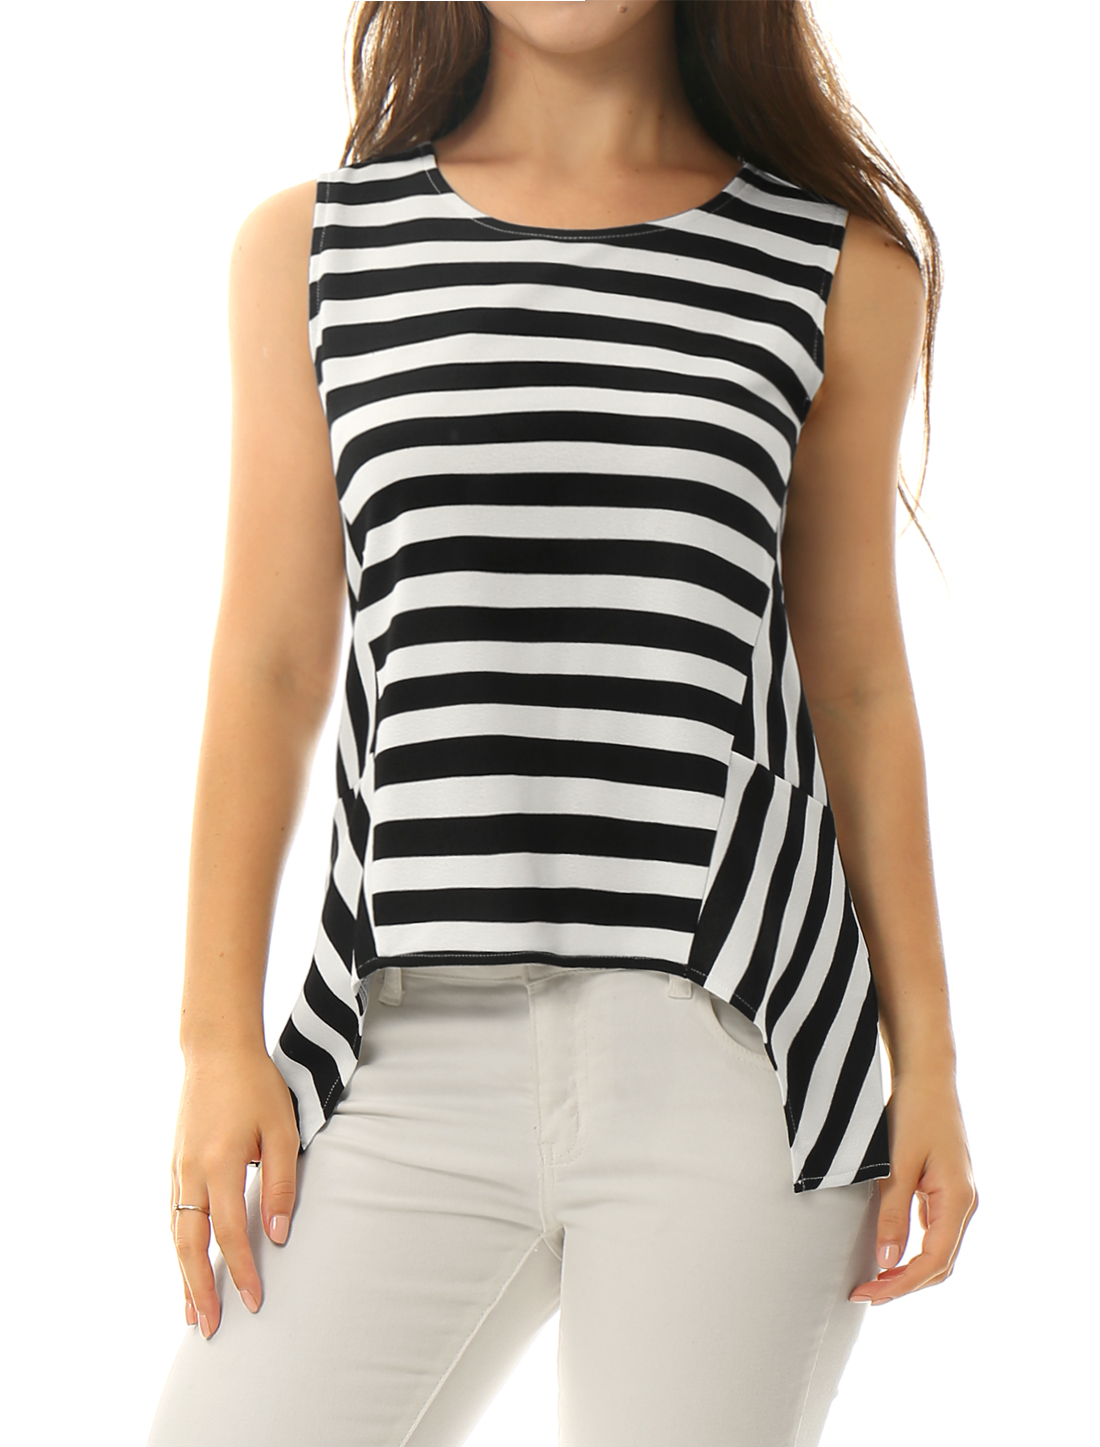 Women Stripes Asymmetric Hem Round Neck Tank Top White Black M